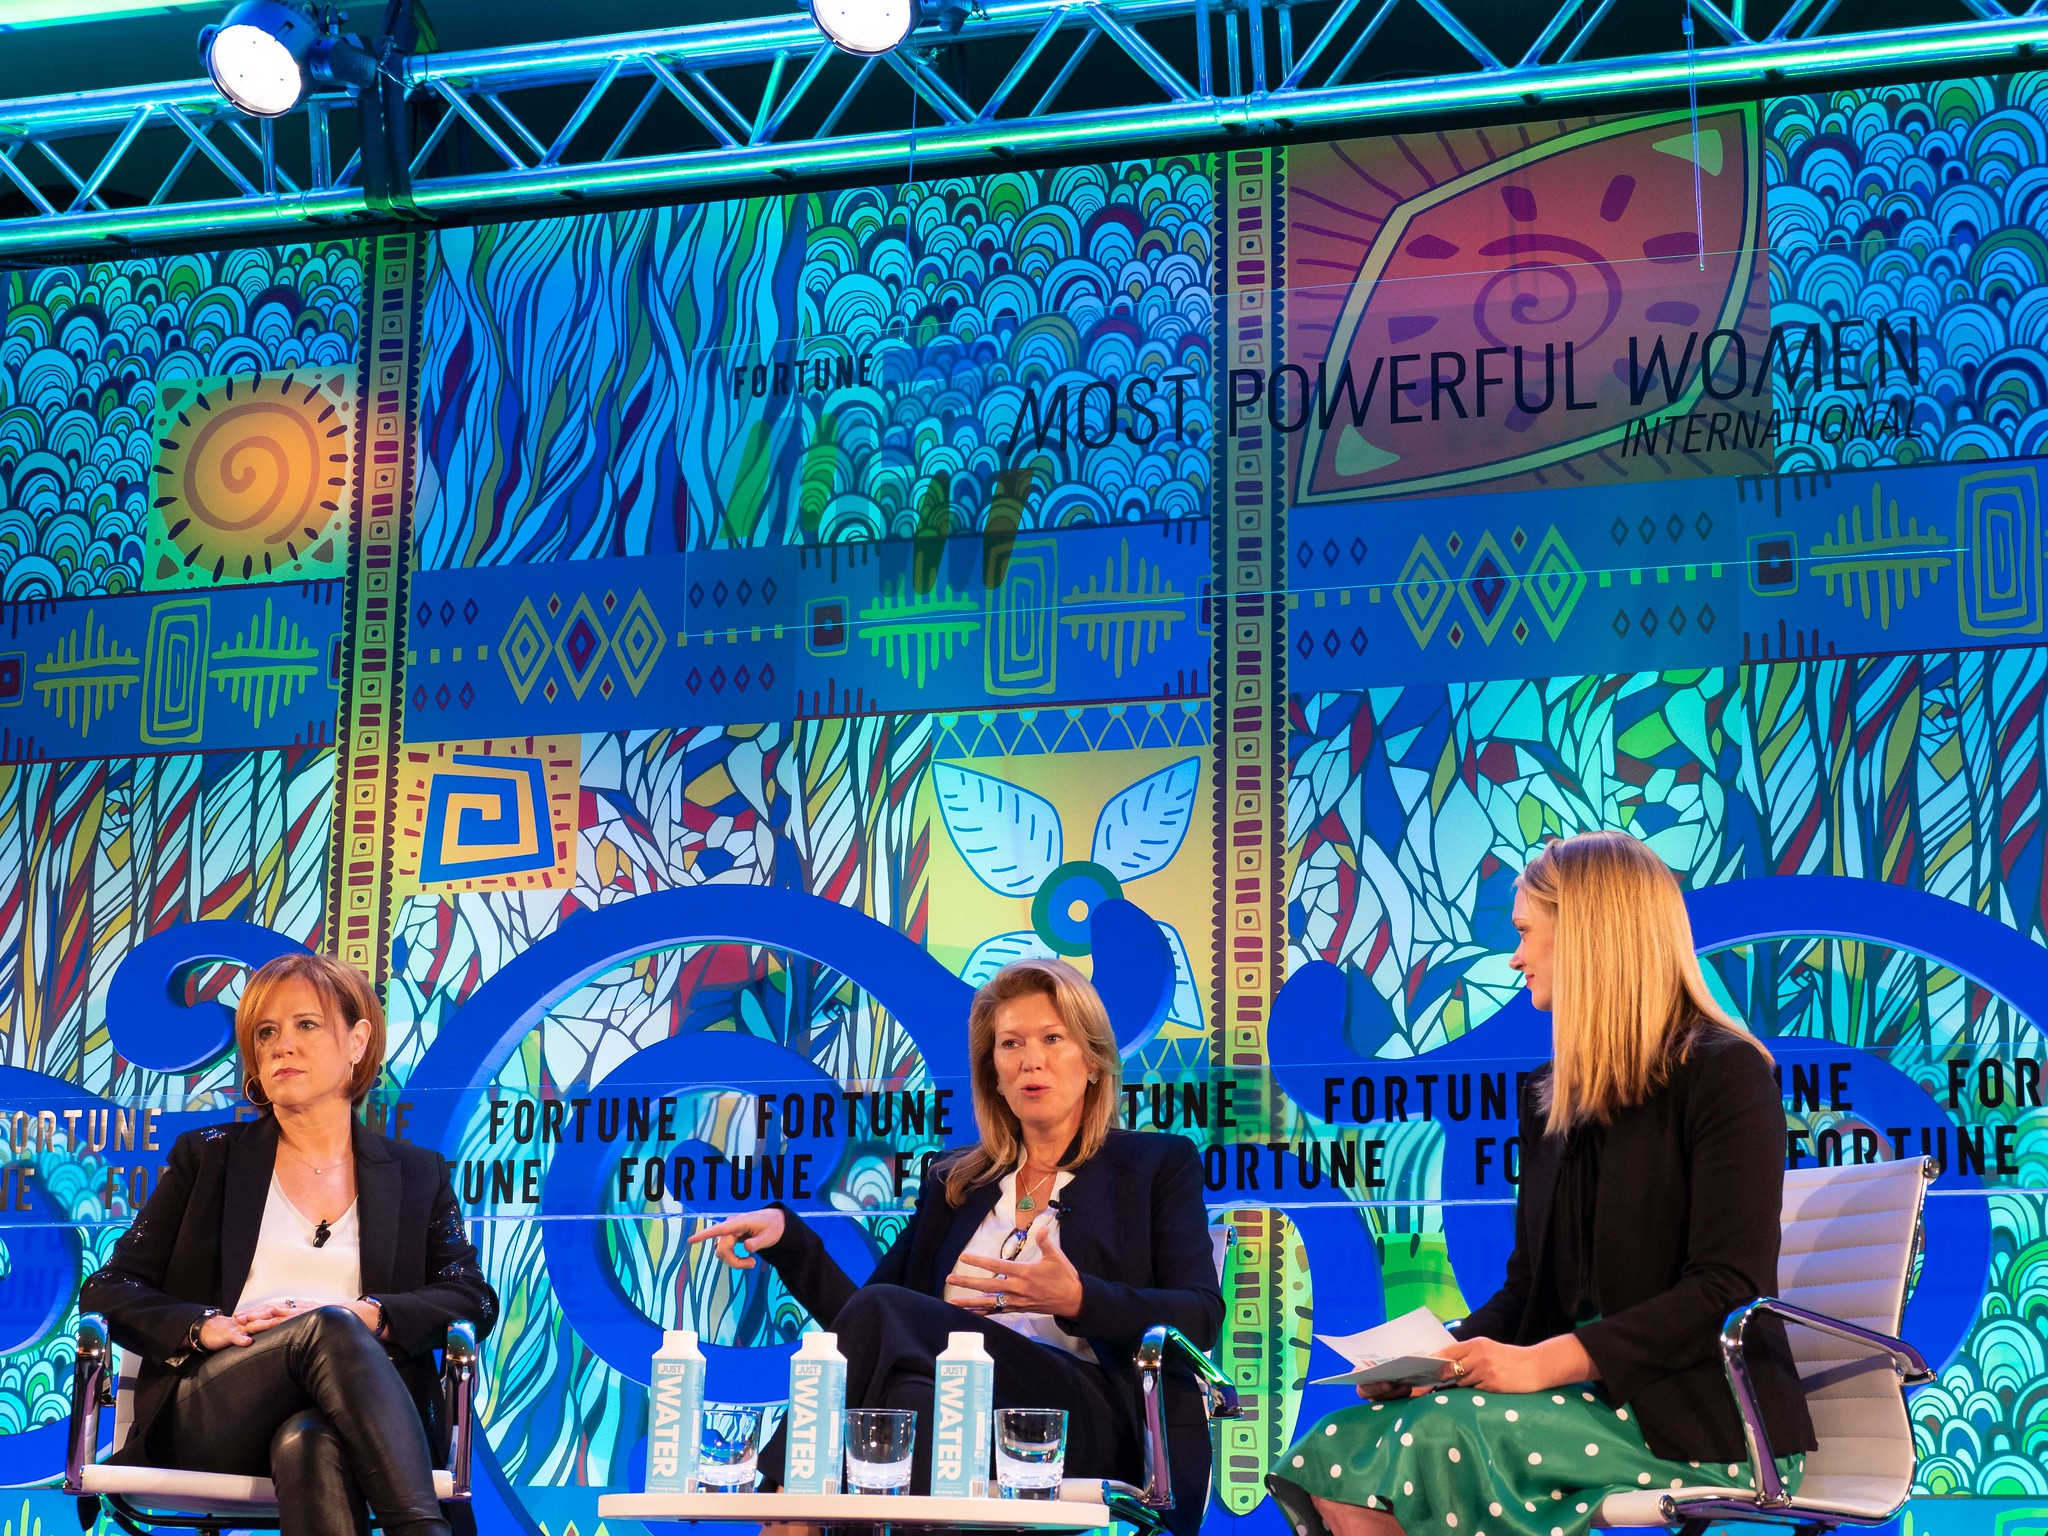 Rakefet Russak-Aminoach, President and CEO of Leumi Group, and Karen Frank, CEO of Private Bank and Overseas Services at Barclays, at Fortune Most Powerful Women International in London.